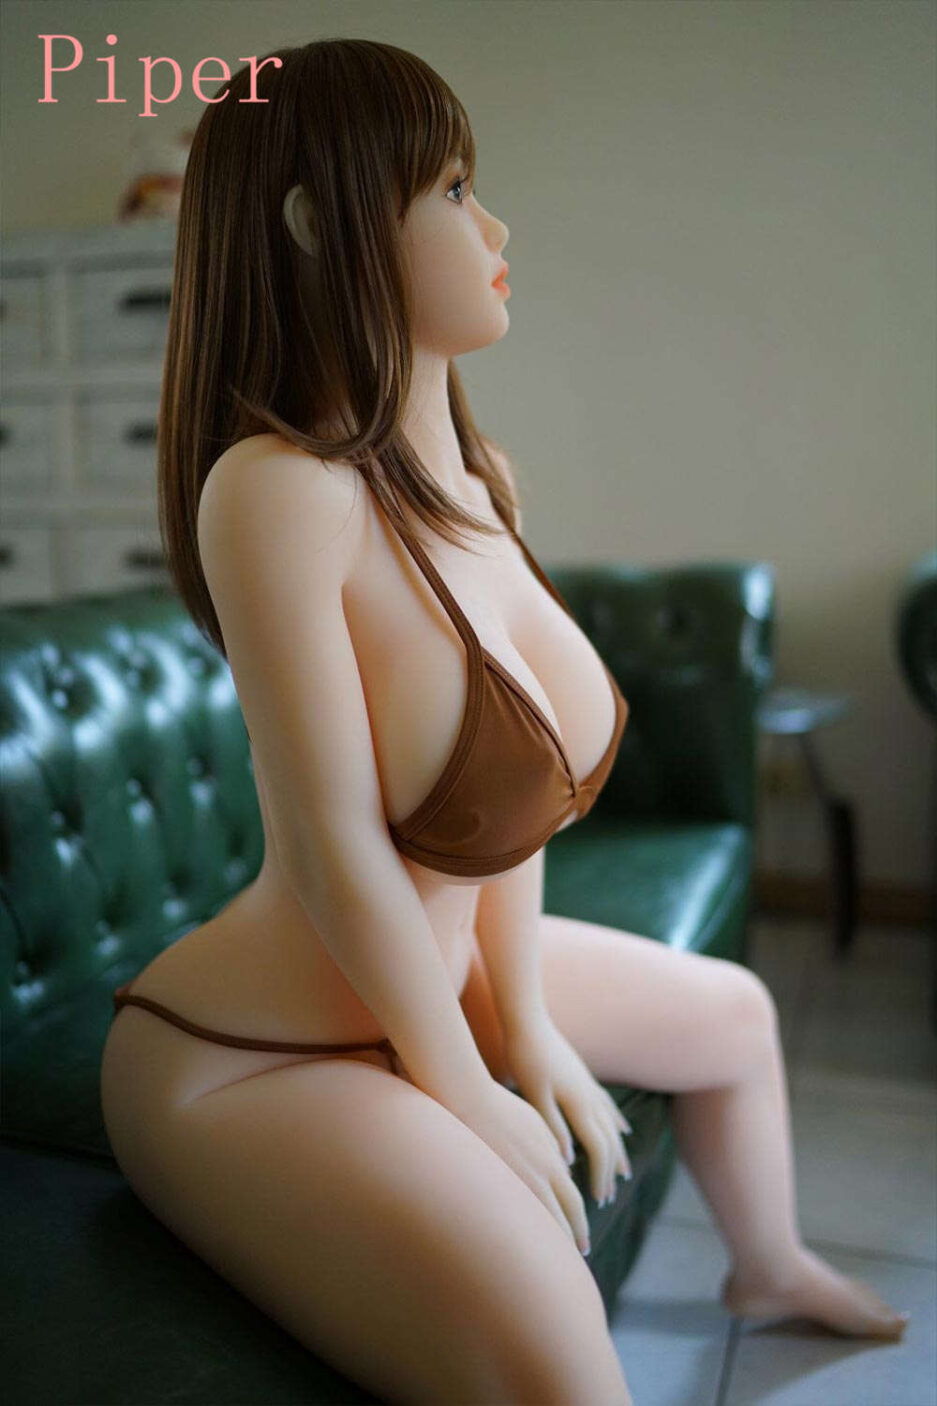 Sex doll with hands on the sofa